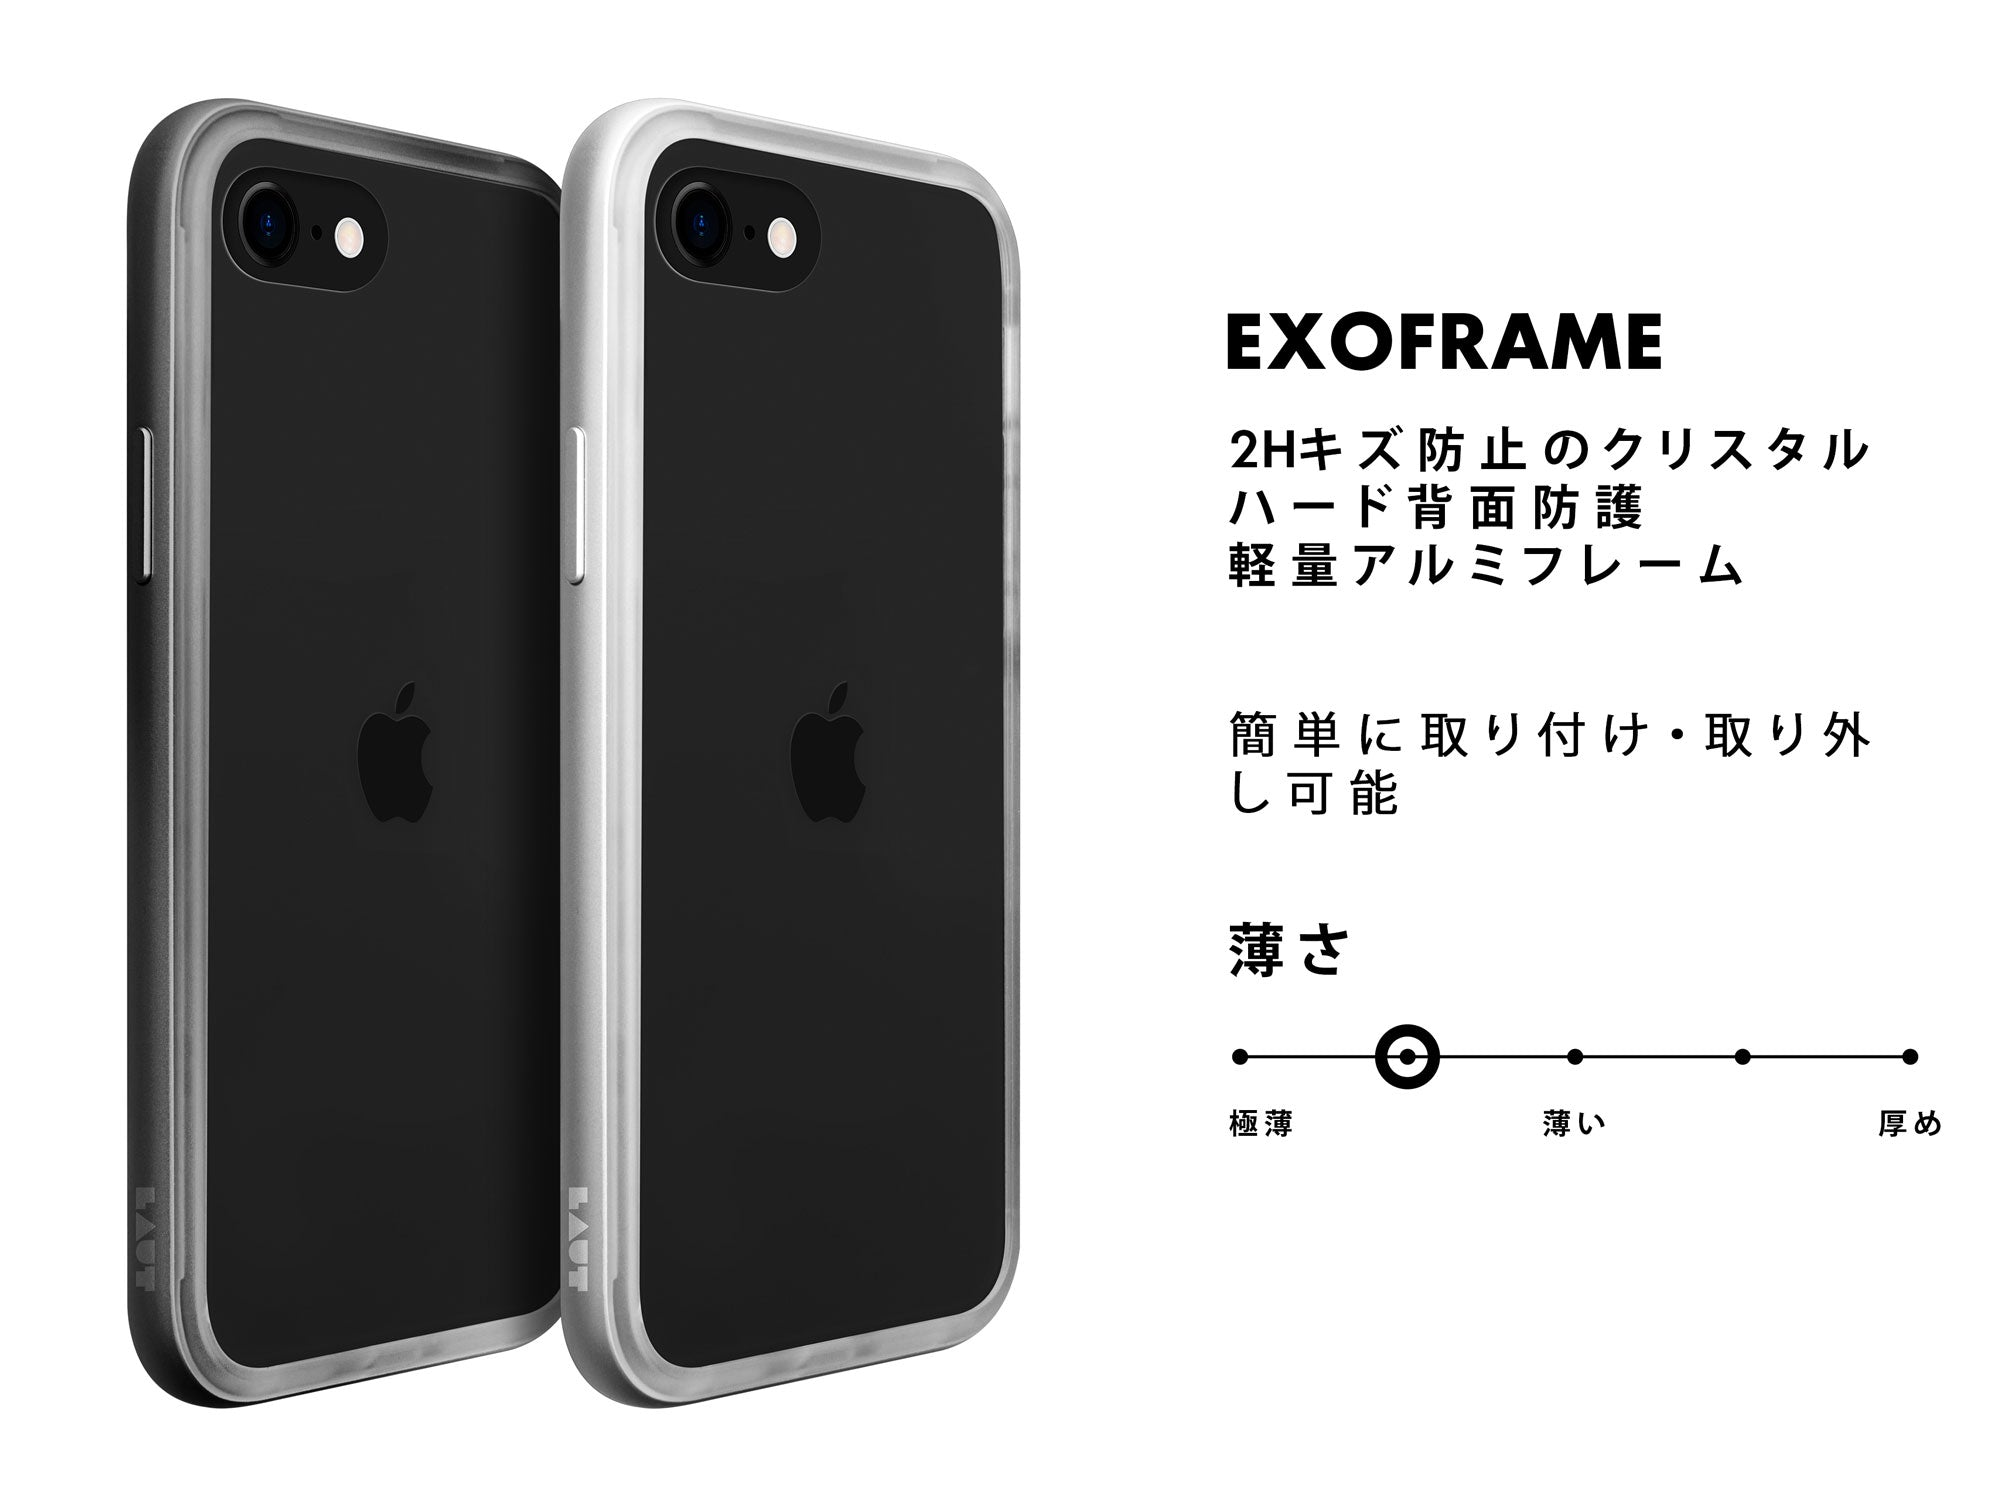 LAUT - ExoFrame for iPhone SE 2020